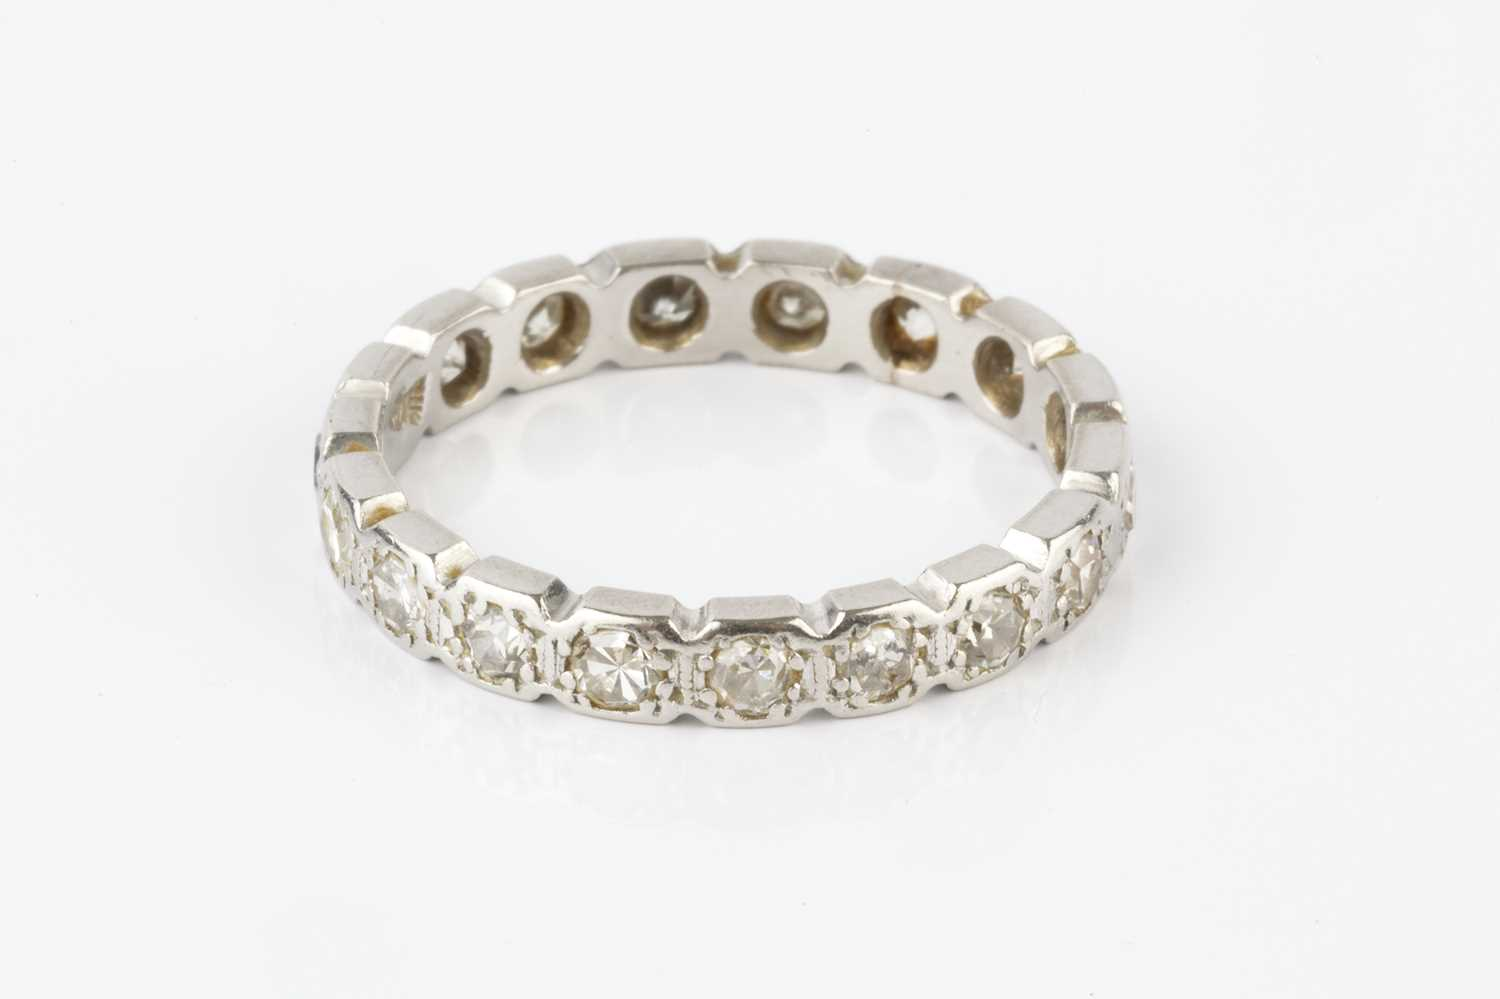 A diamond full hoop eternity ring, designed as a line of geometric settings, each with a single-